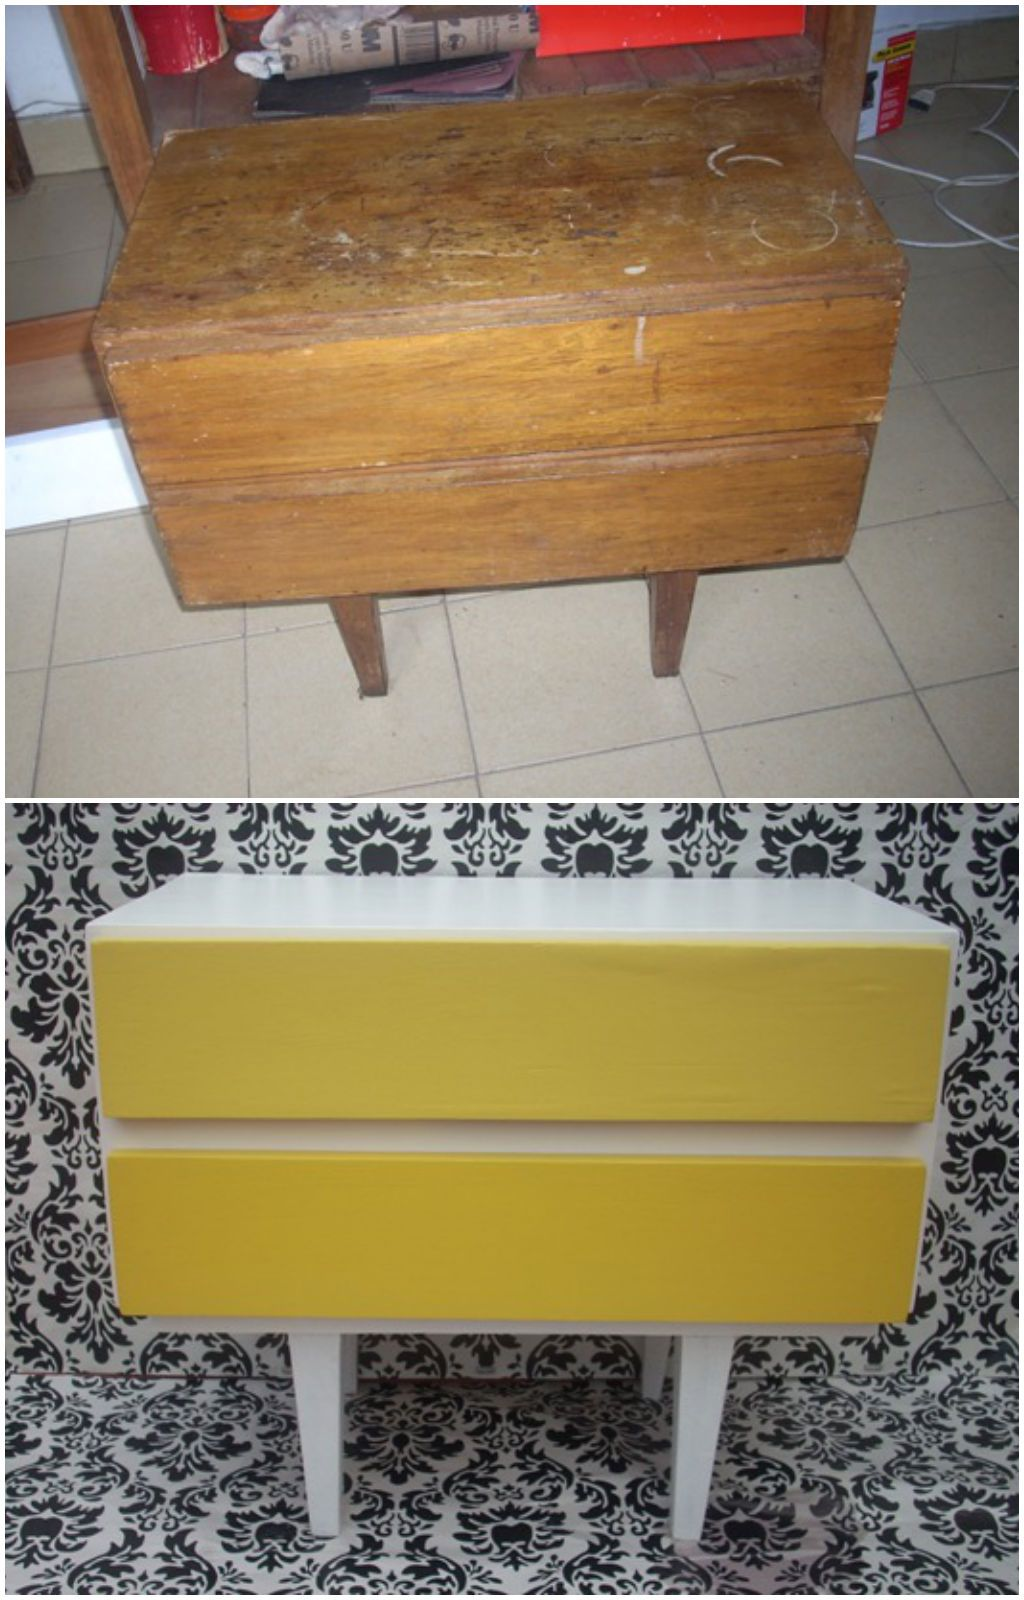 Vintage Muebles Y Objetos Before After By Cositas Vintage Muebles Pintados